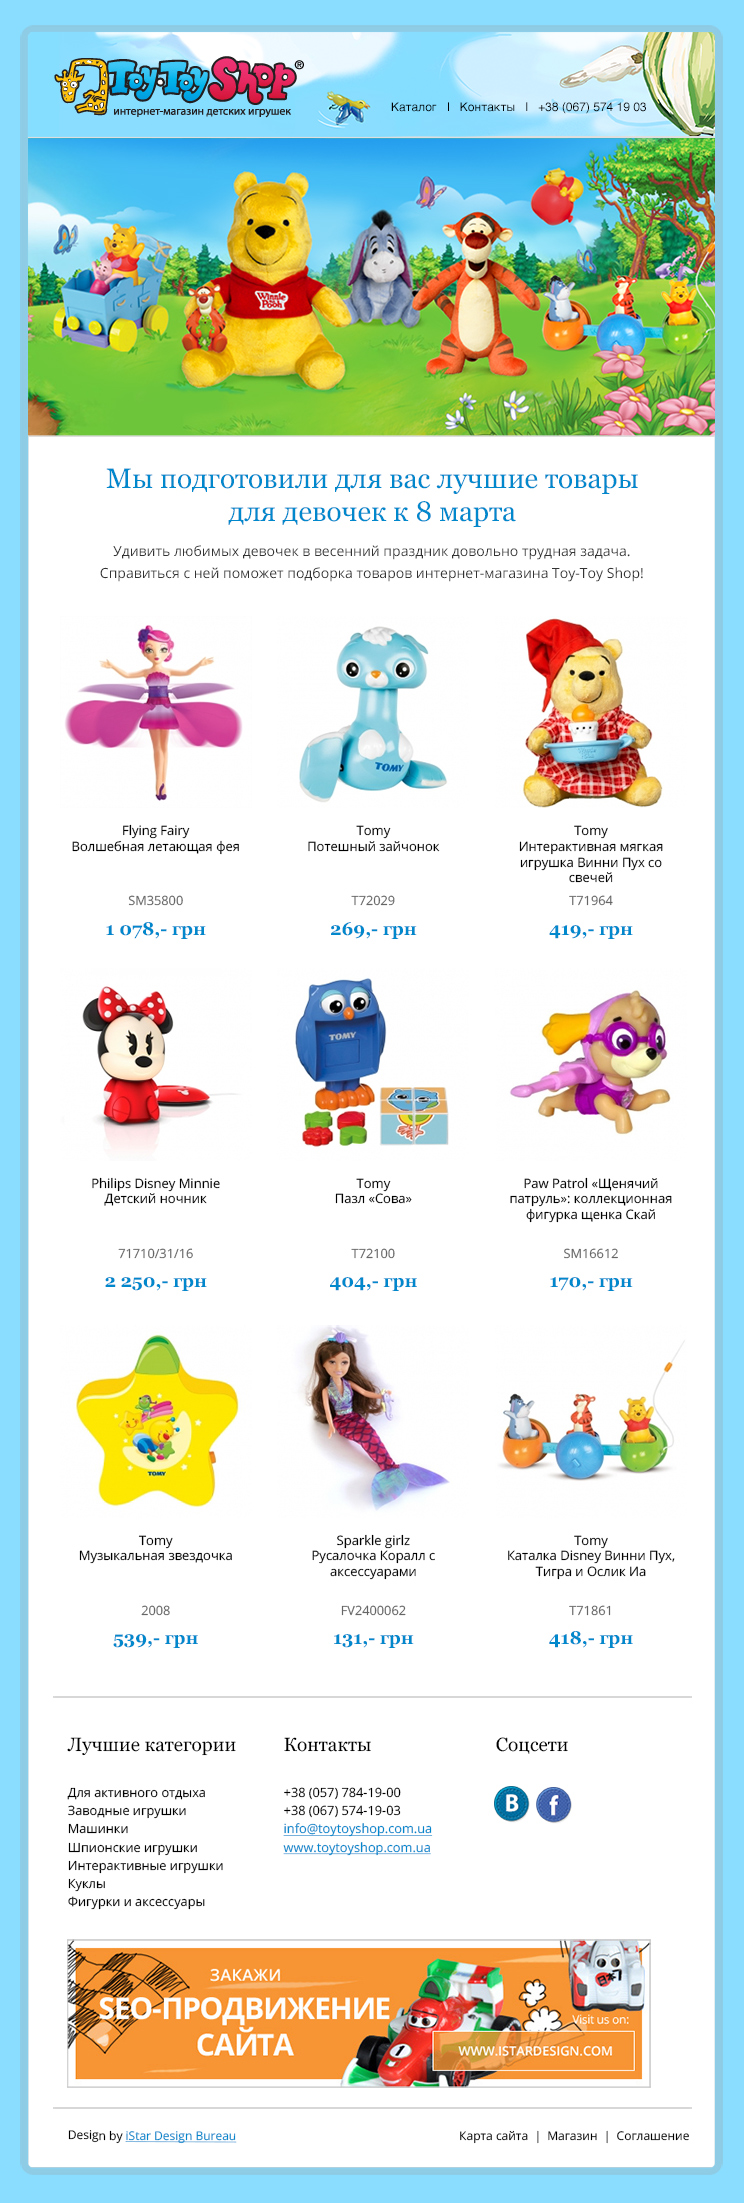 Commercial email for Toy-Toy Shop